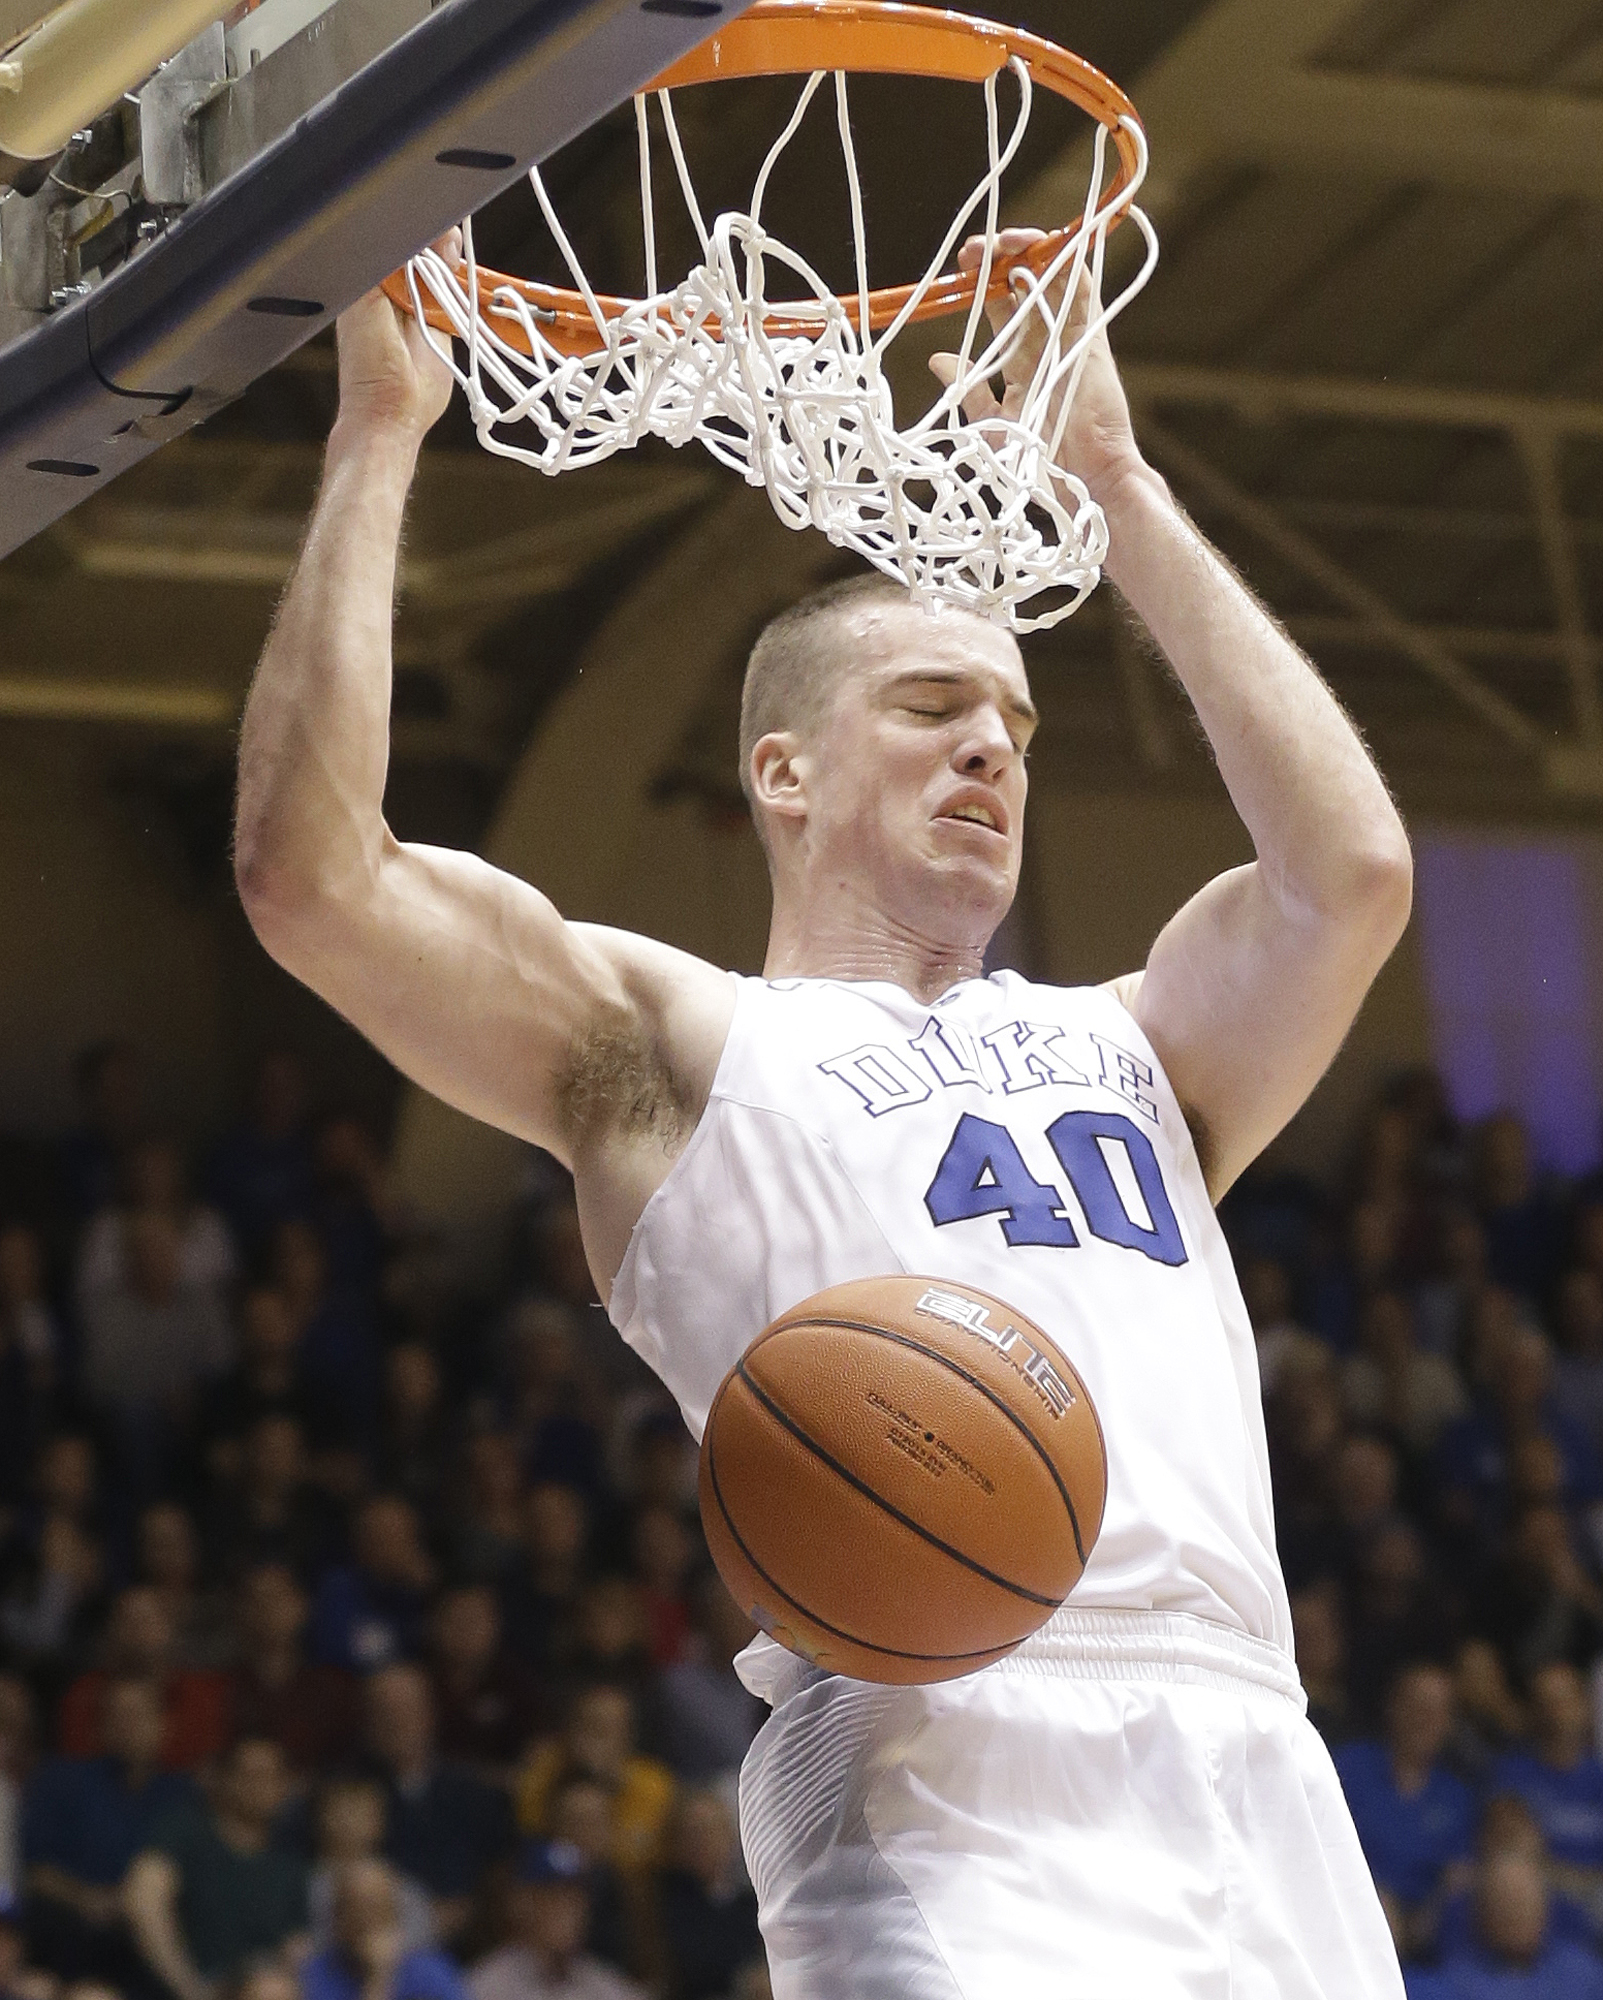 Duke's Marshall Plumlee (40) dunks against Virginia Tech during the second half of an NCAA college basketball game in Durham, N.C., Saturday, Jan. 9, 2016. Duke won 82-58. (AP Photo/Gerry Broome)